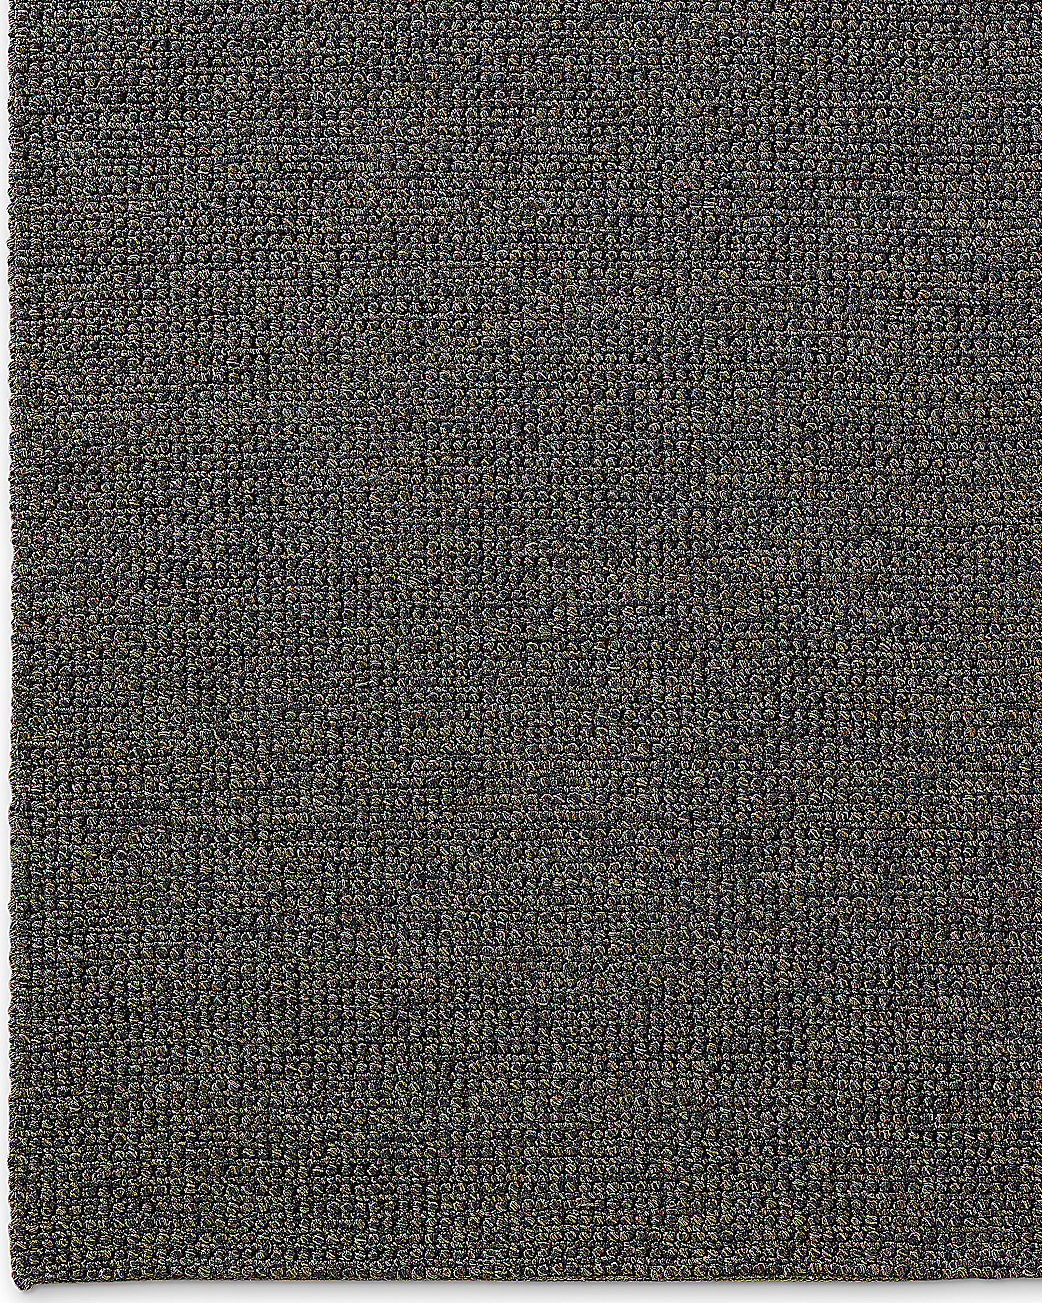 Knotted Jute Rug - Espresso